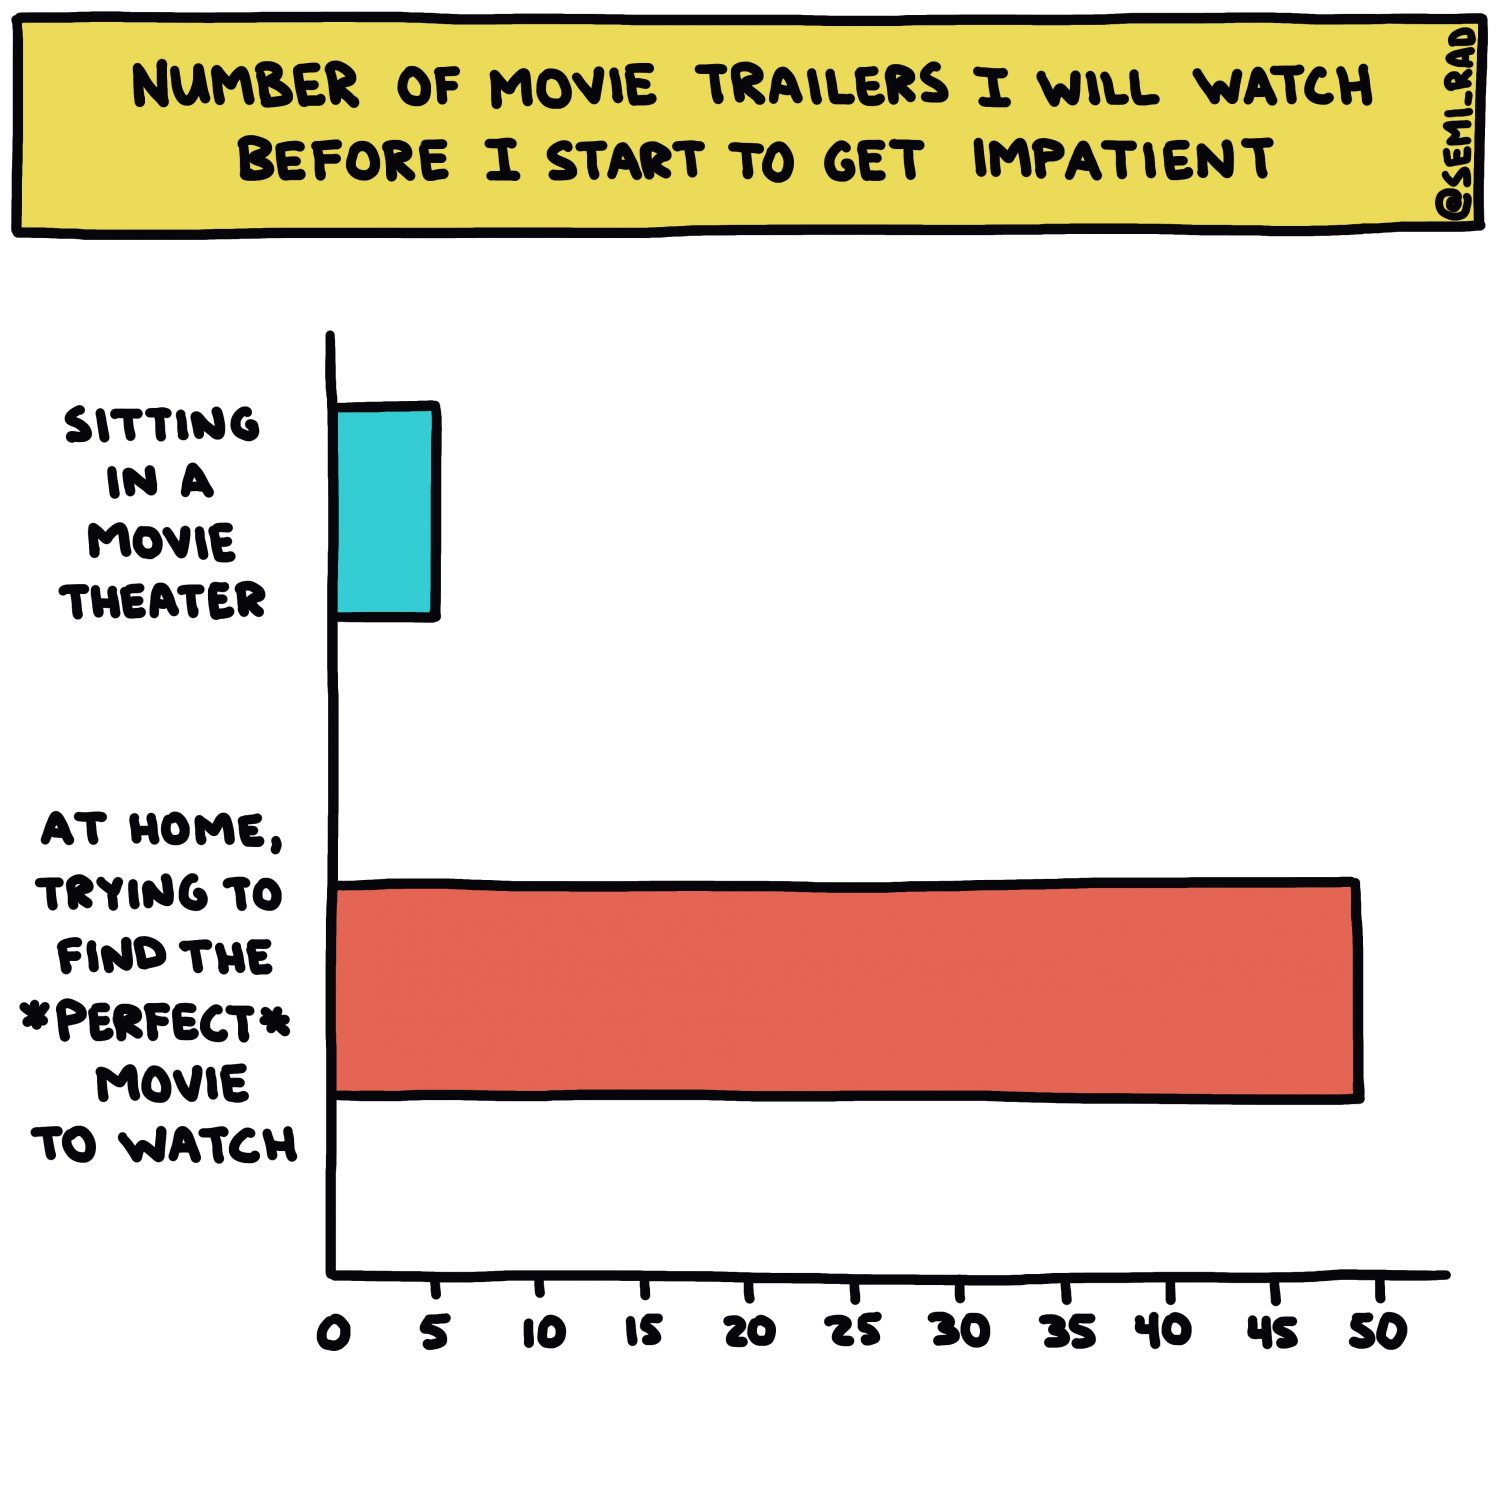 How Many Movie Trailers I Will Watch Before I Start To Get Impatient